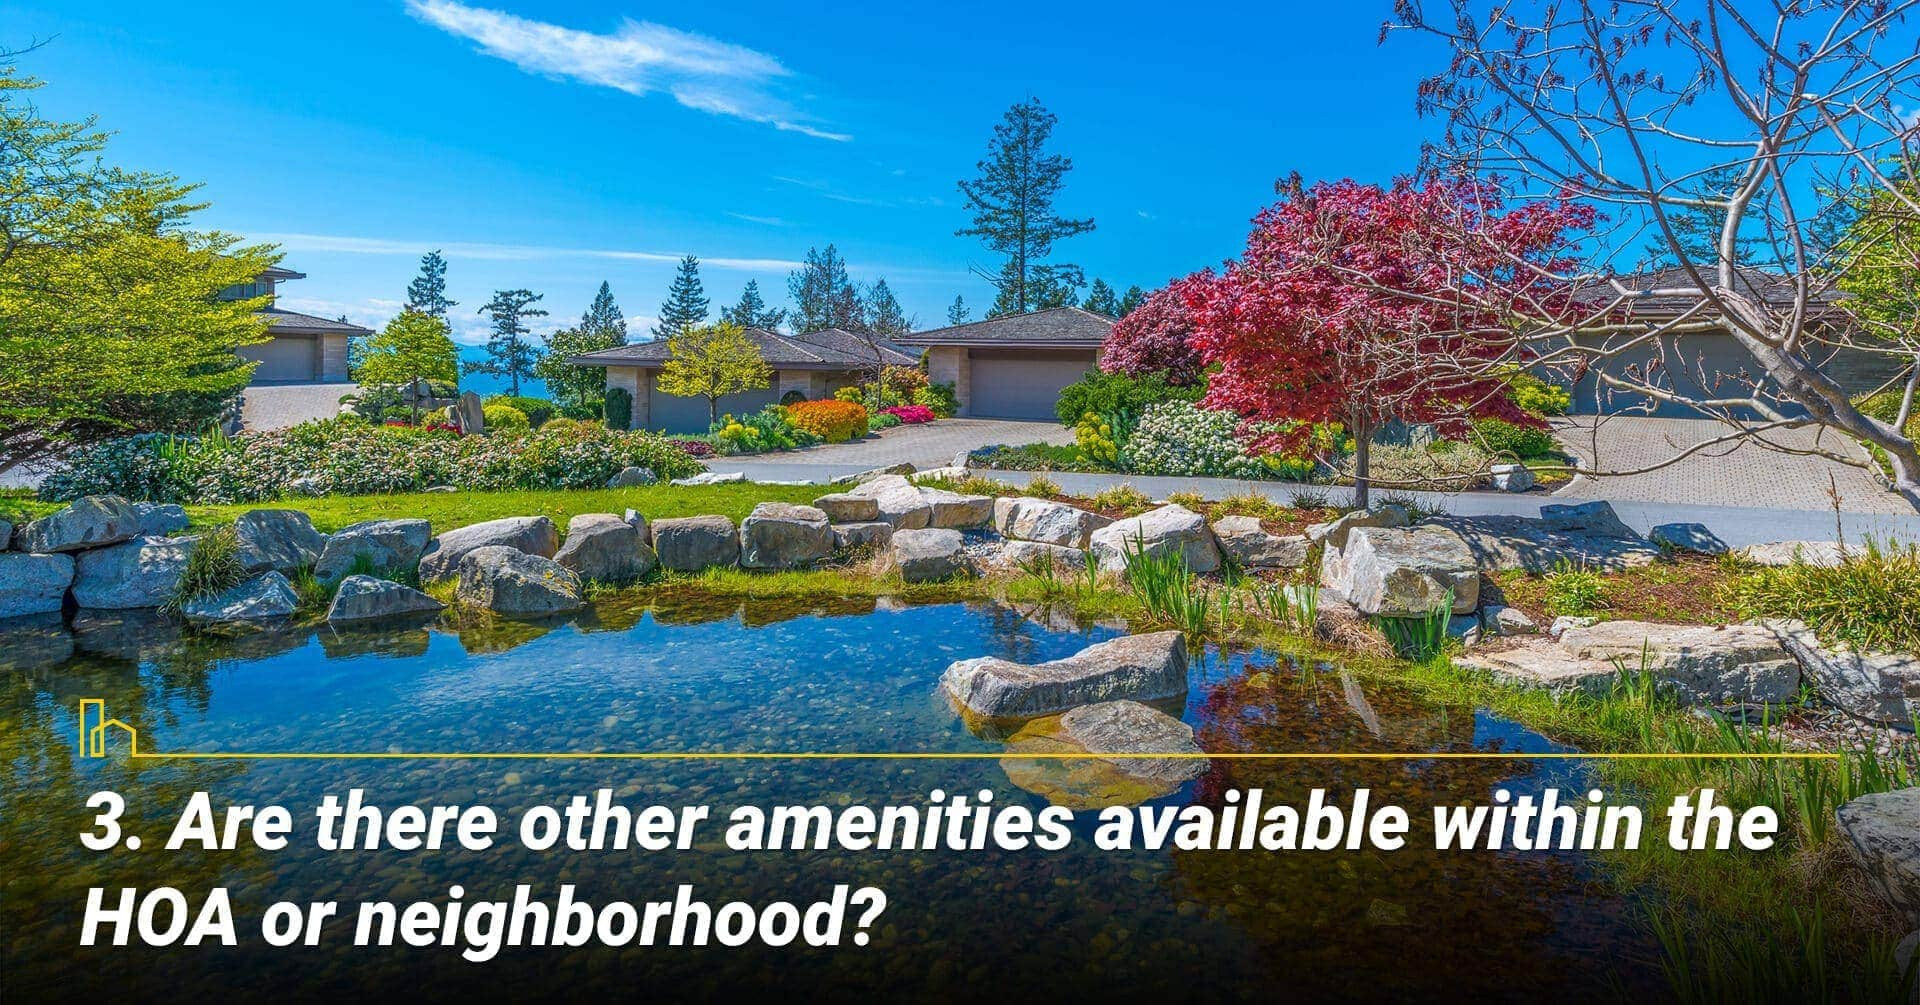 Are there other amenities available within the HOA or neighborhood?